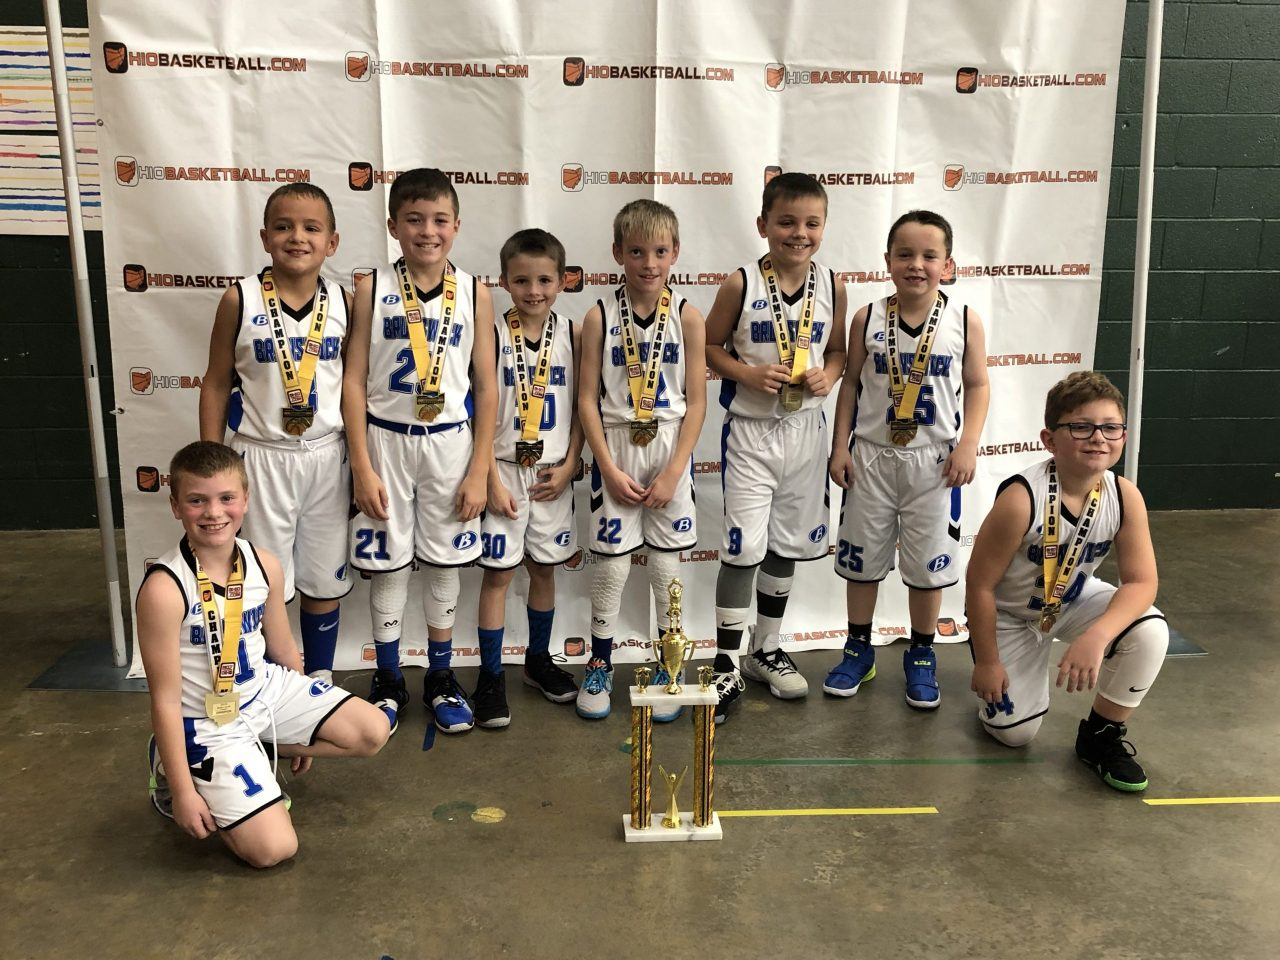 3rd Grade Boys A Runner-Up Indy blue devils